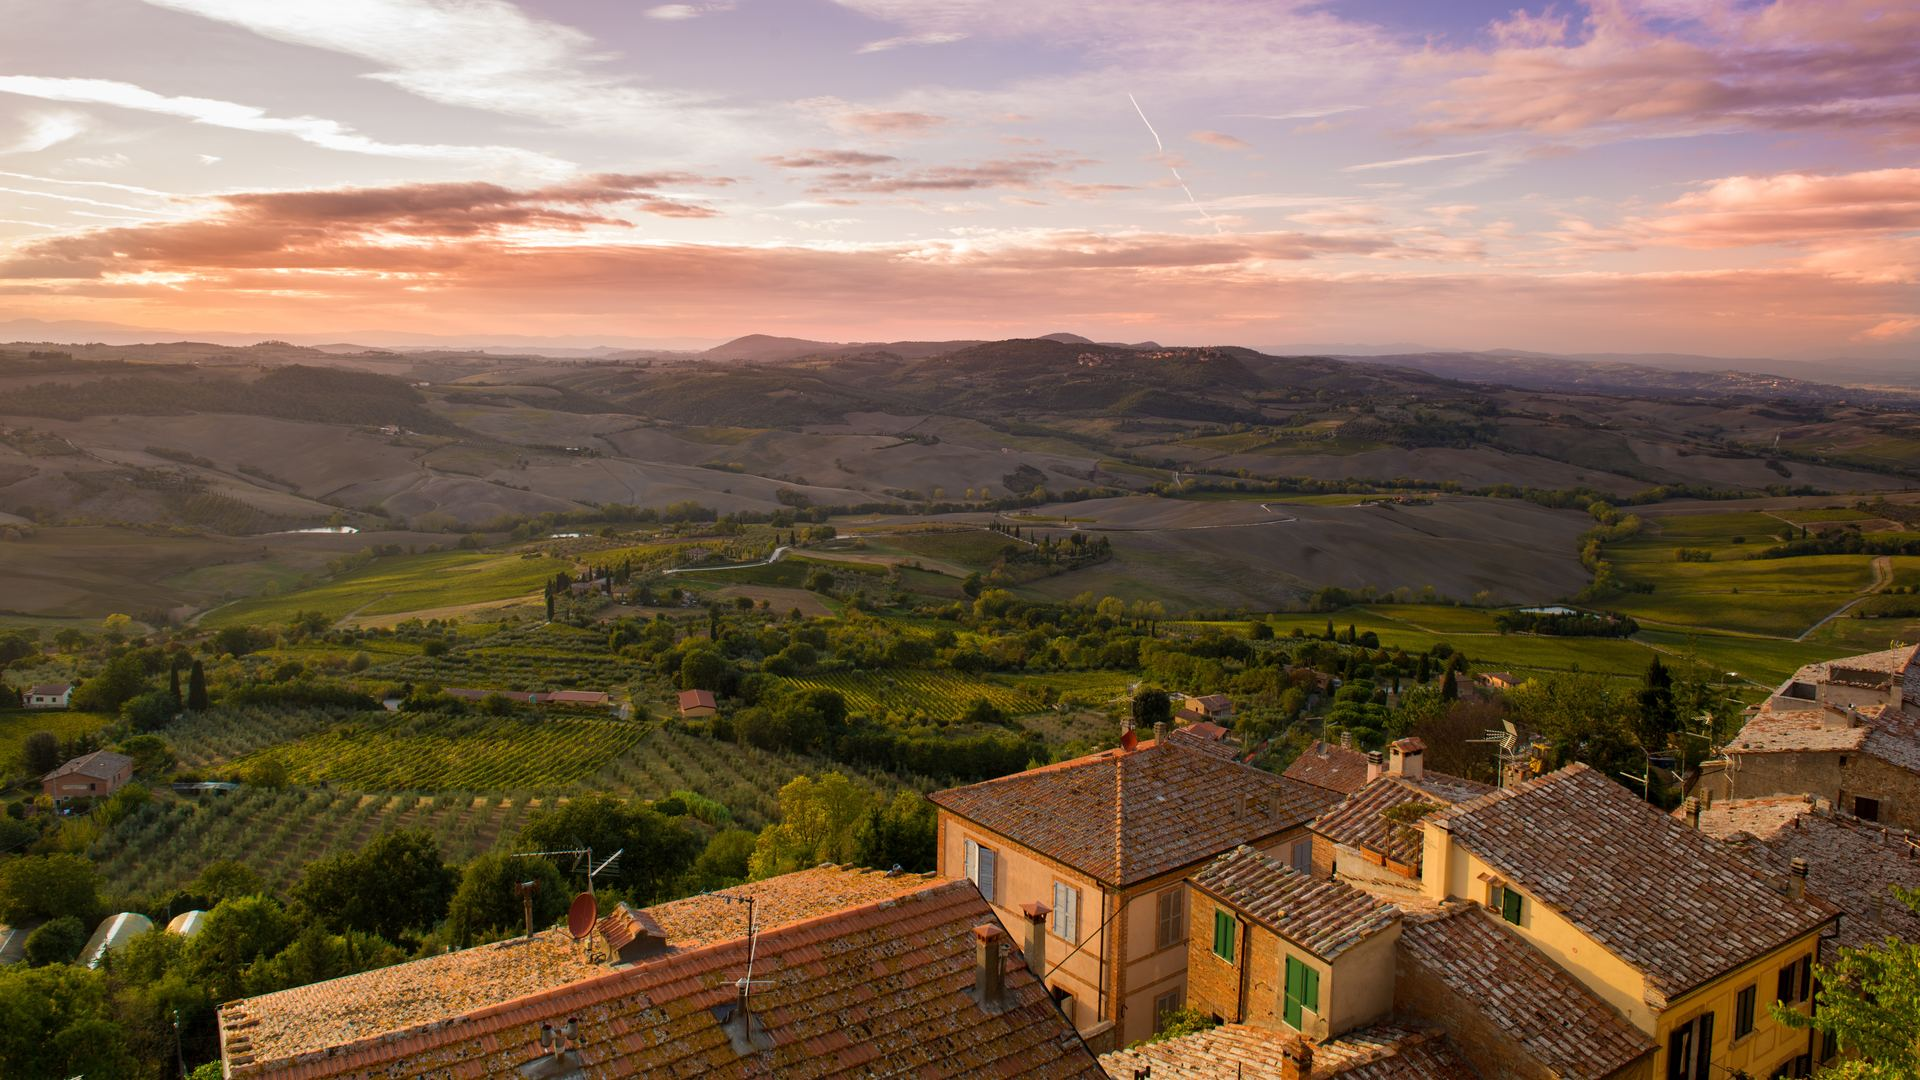 Eataly NYC's Olive Oil Expert Shares His Insider Guide To Tuscany